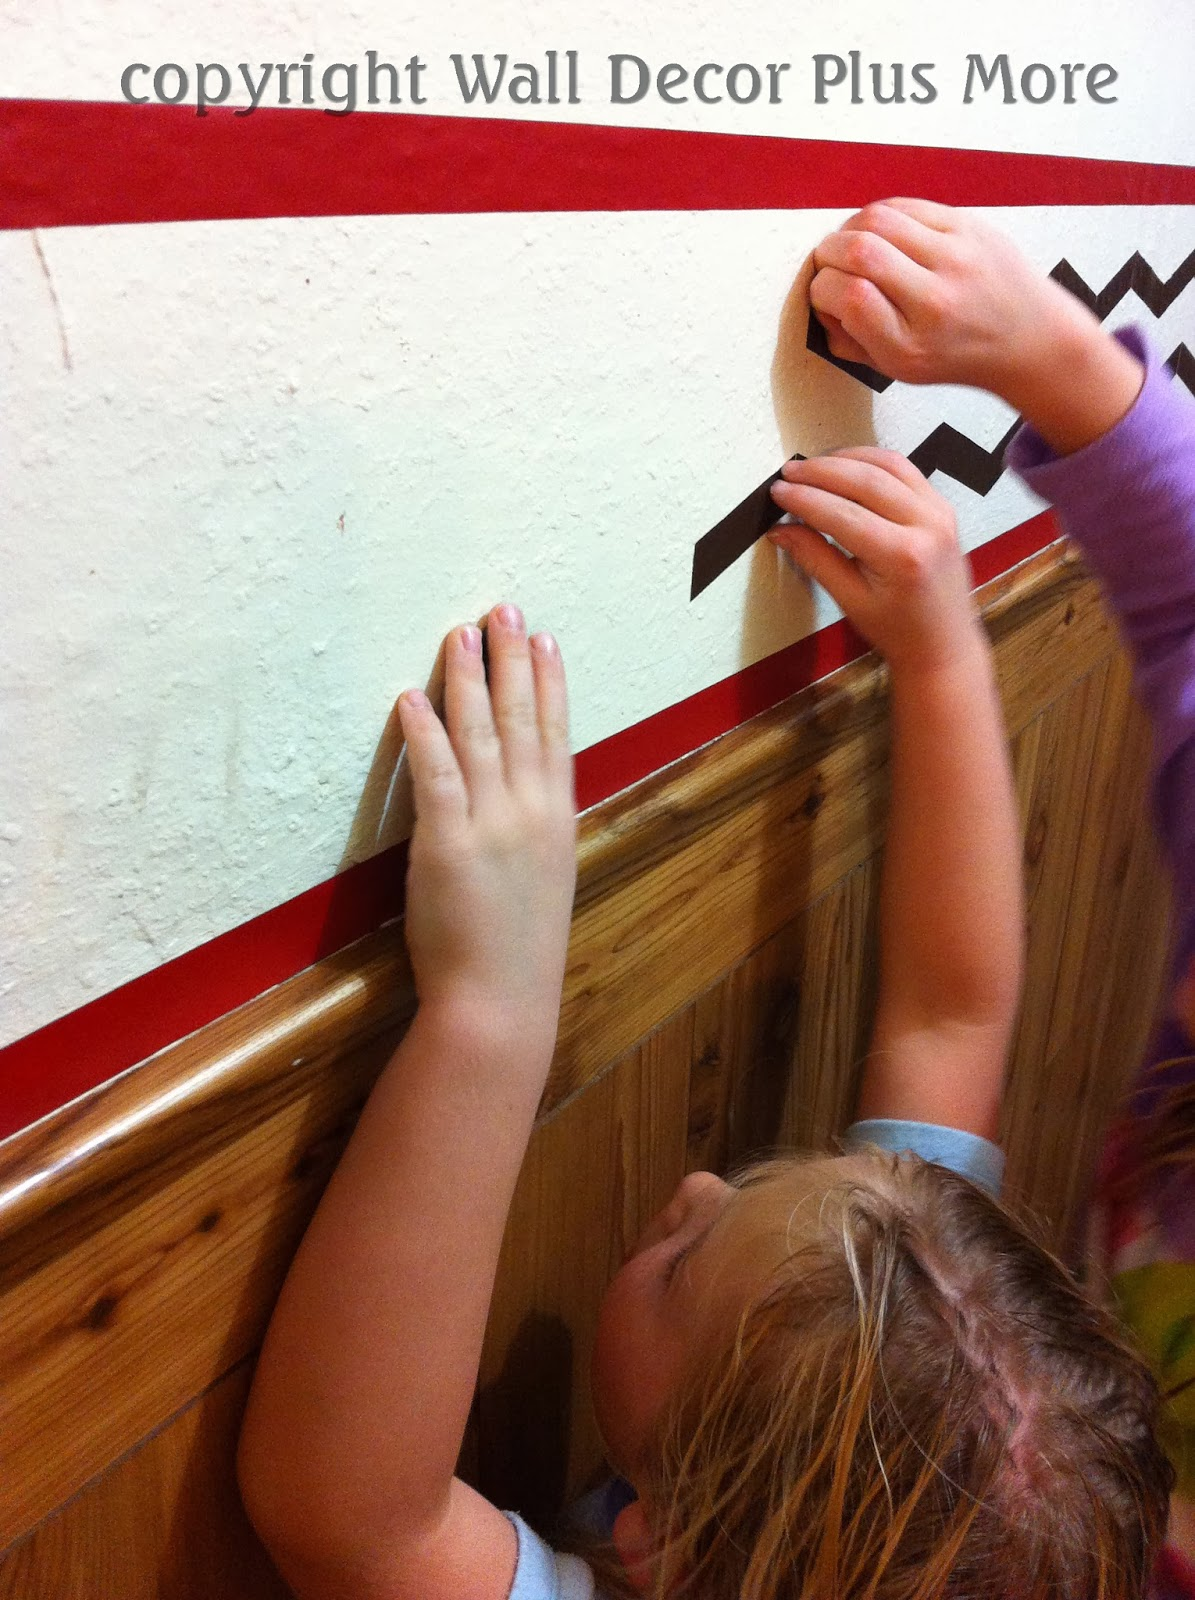 Amazing Things You May Not Know About Wall Decals And Stickers - How to remove wall decals